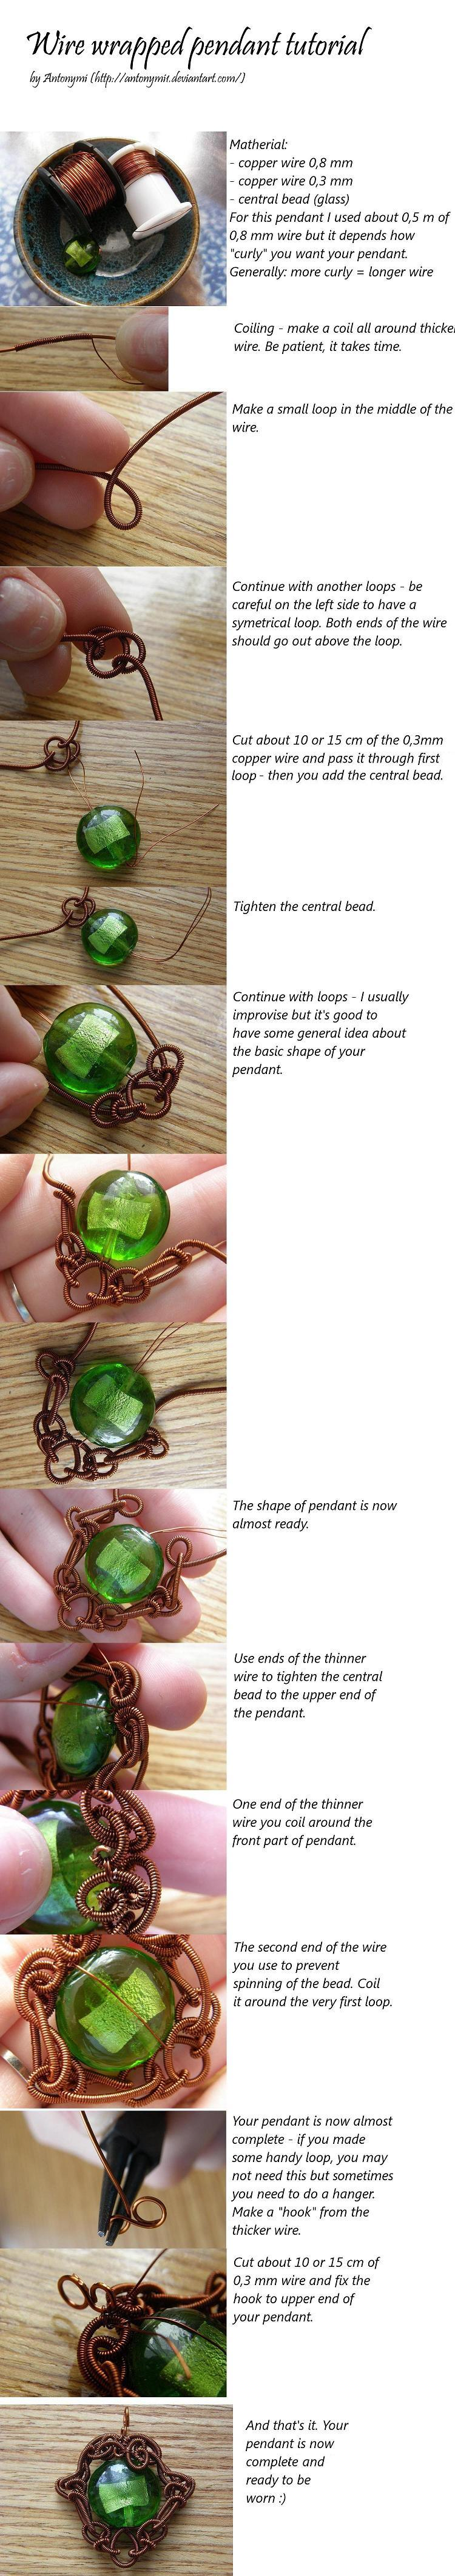 Wire wrapped pendant tutorial by Antonymi1